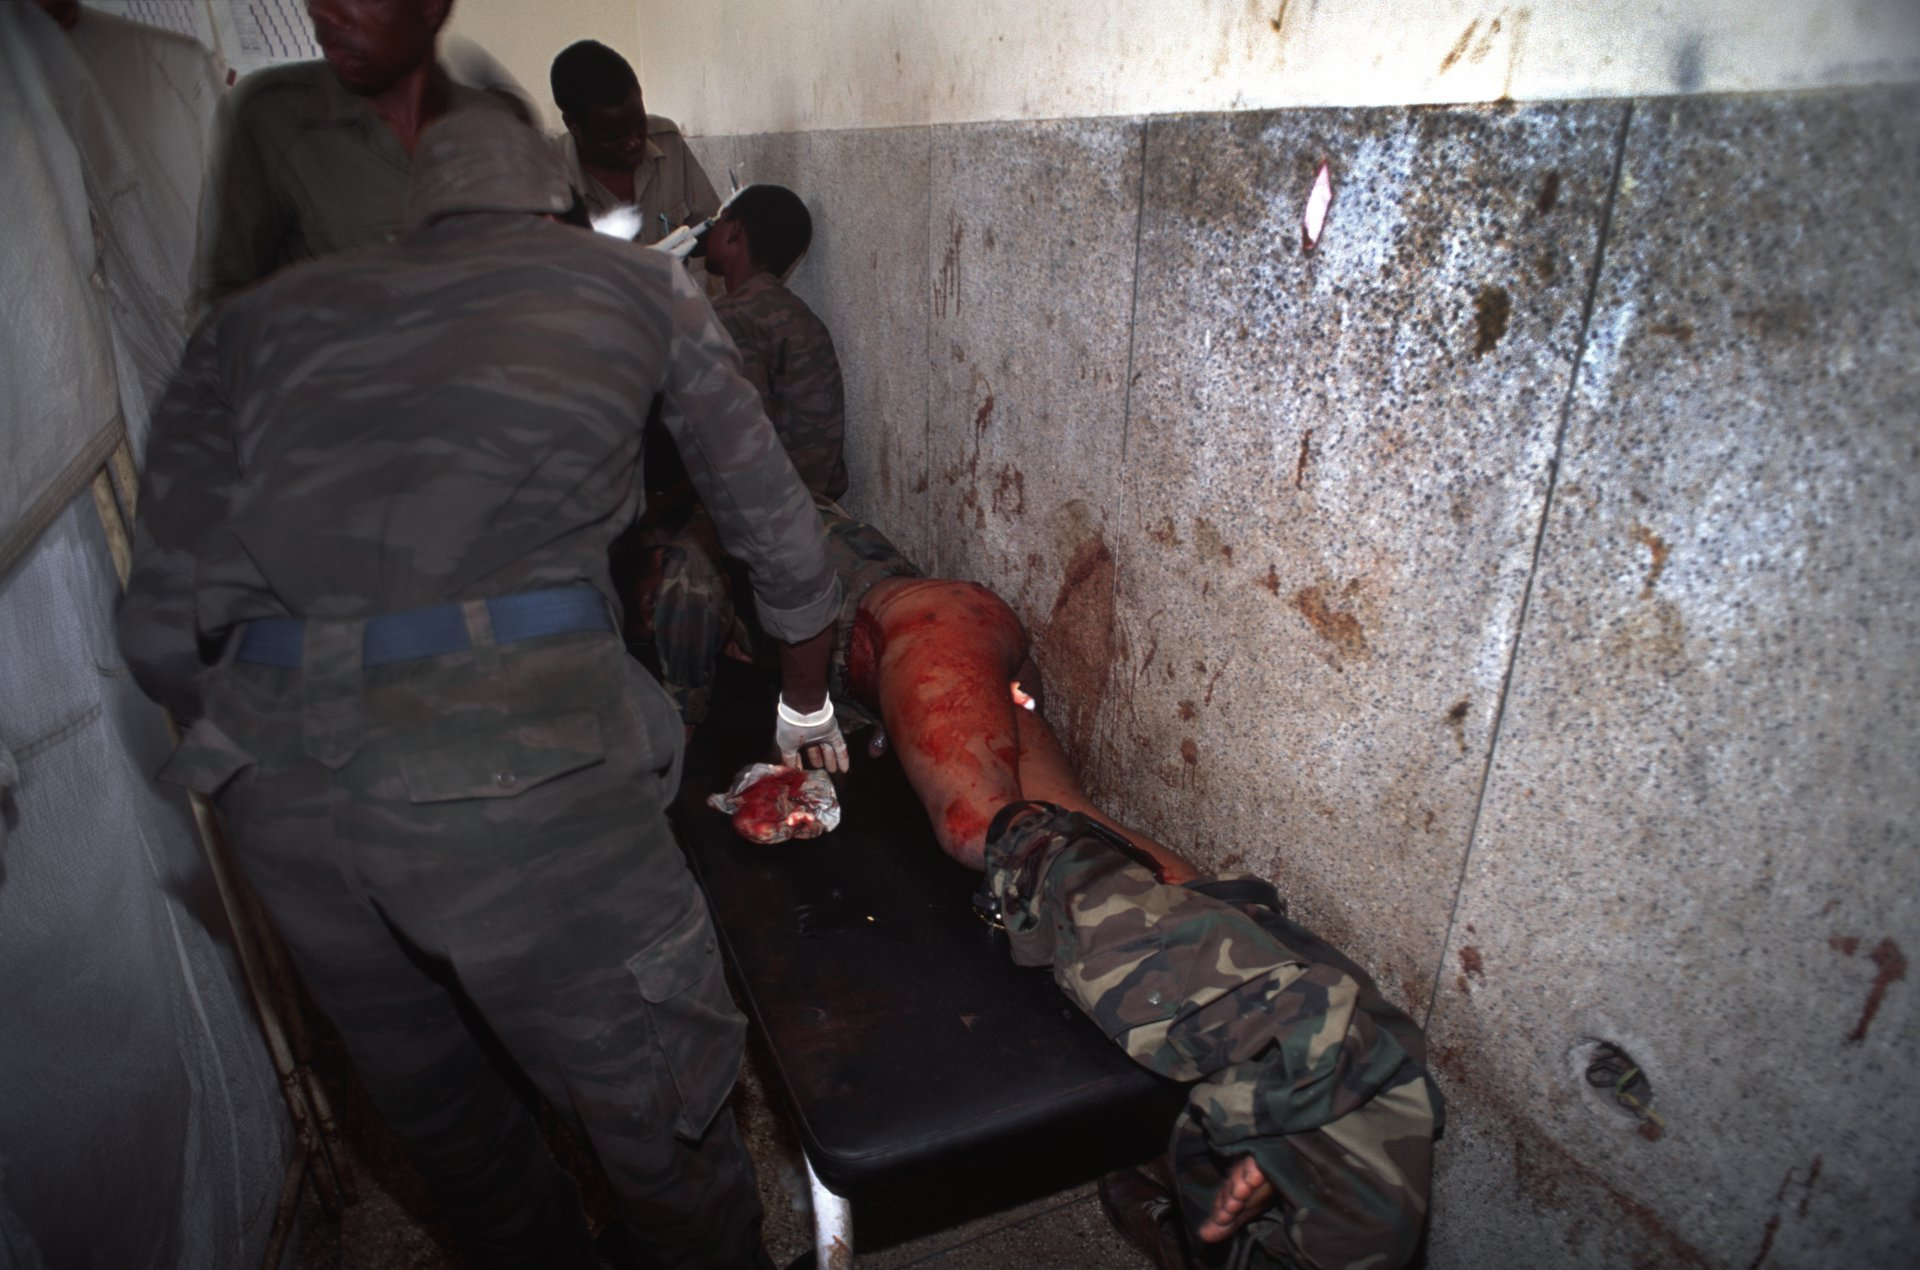 """""""Casualty of War"""" Angola's brutal civil war. Q                      Normal    0                false    false    false       en-US-POSIX    JA    X-NONE                                                                                                                                                                                                                                                                                                                                                                                                                                                                                                                           /* Style Definitions */ table.MsoNormalTable {mso-style-name:""""Table Normal""""; mso-tstyle-rowband-size:0; mso-tstyle-colband-size:0; mso-style-noshow:yes; mso-style-priority:99; mso-style-parent:""""""""; mso-padding-alt:0in 5.4pt 0in 5.4pt; mso-para-margin:0in; mso-para-margin-bottom:.0001pt; mso-pagination:widow-orphan; font-size:10.0pt; font-family:Cambria;}     uito, Angola 1993"""